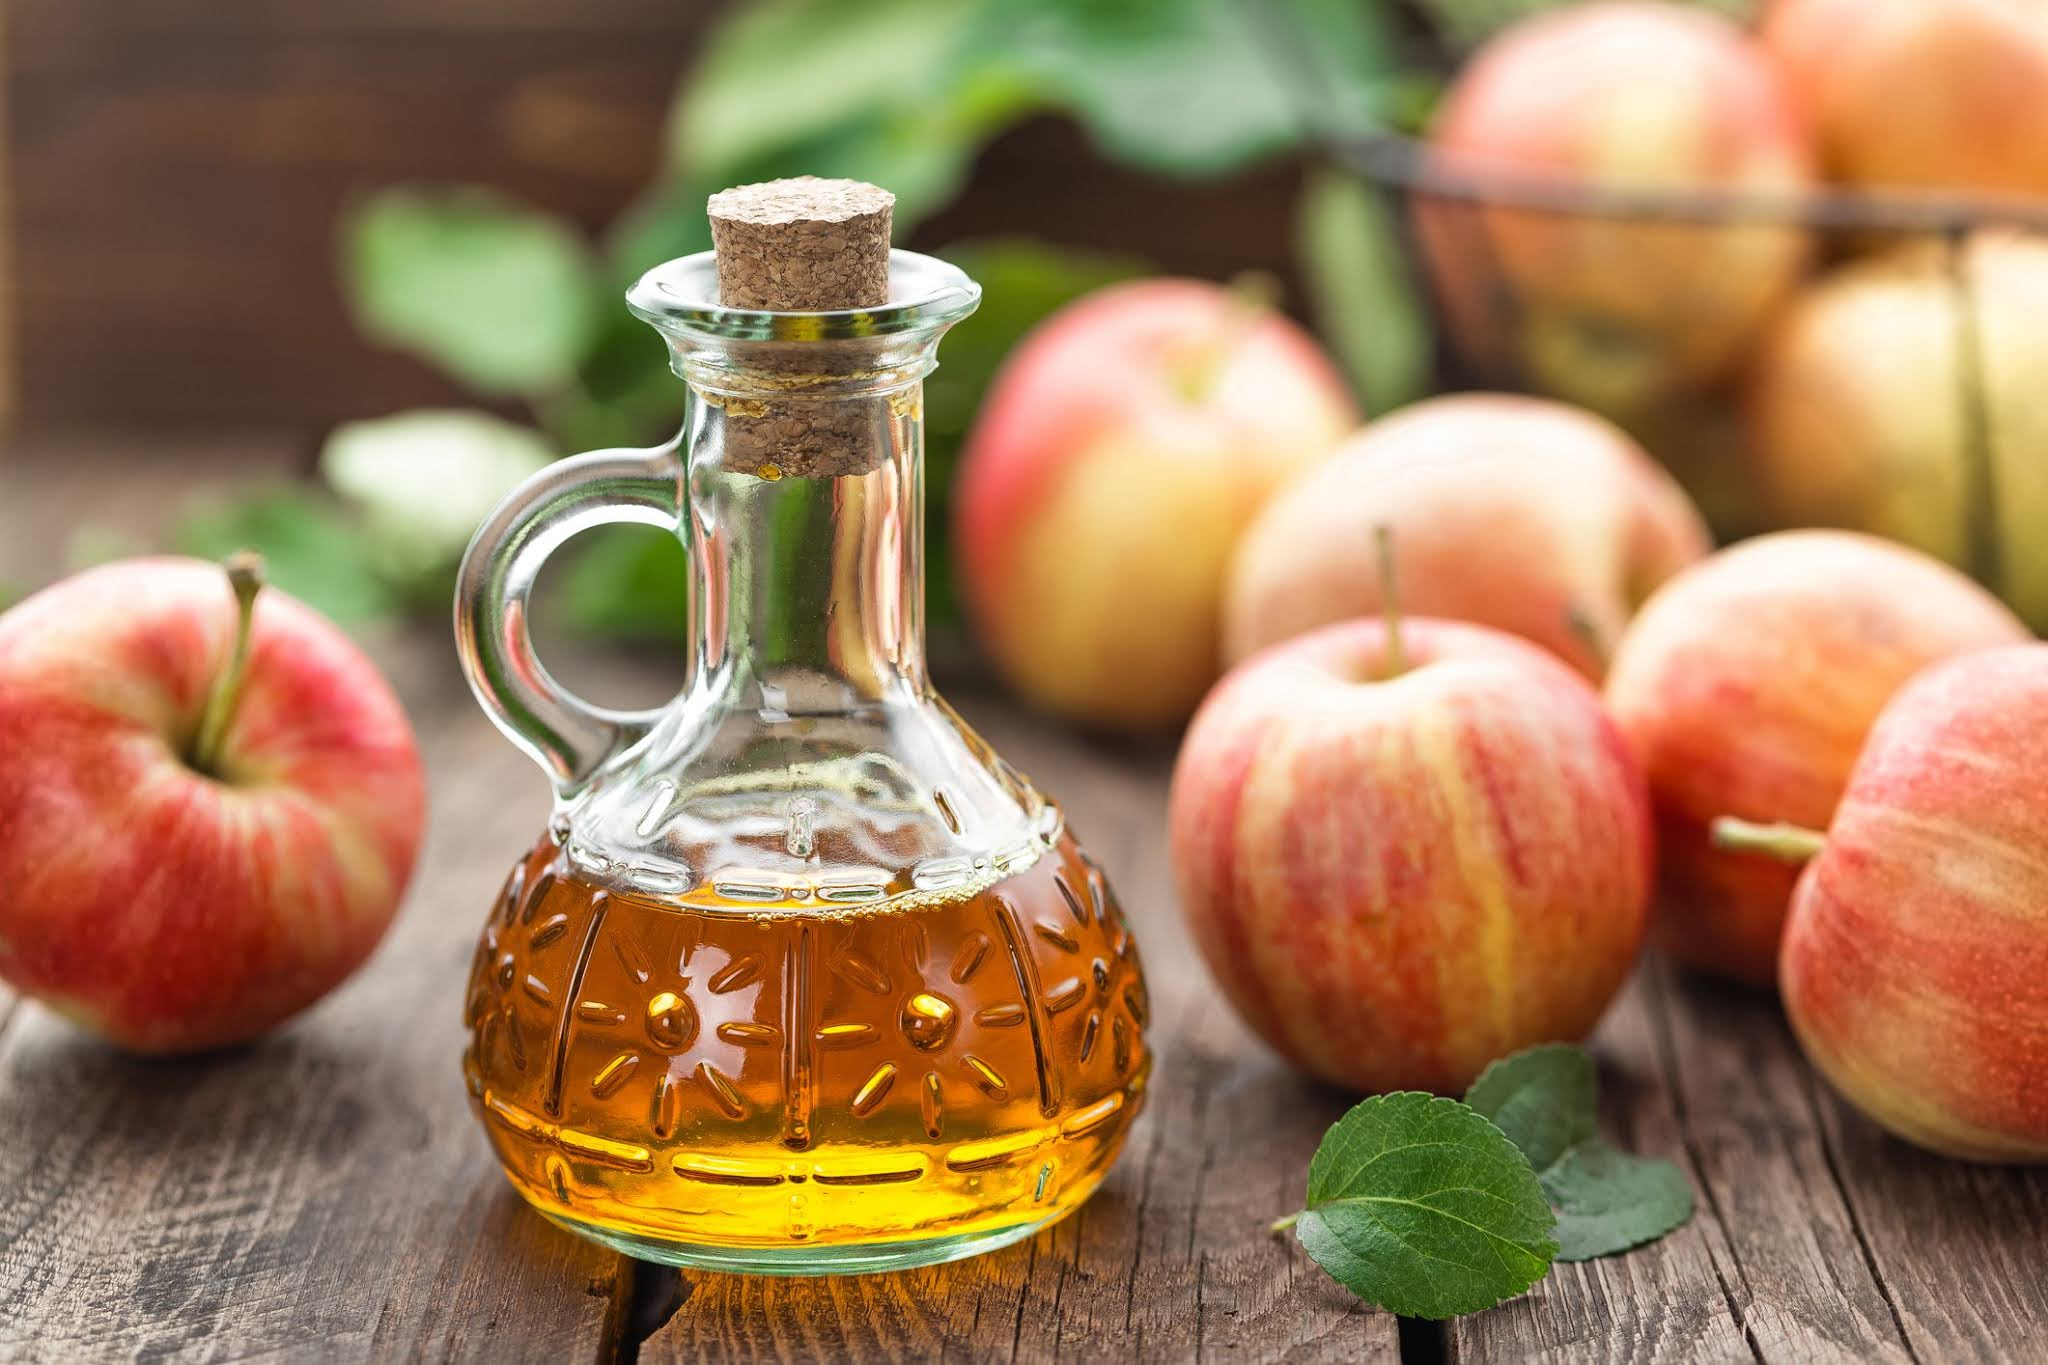 What are the benefits of apple cider vinegar for dry hair?